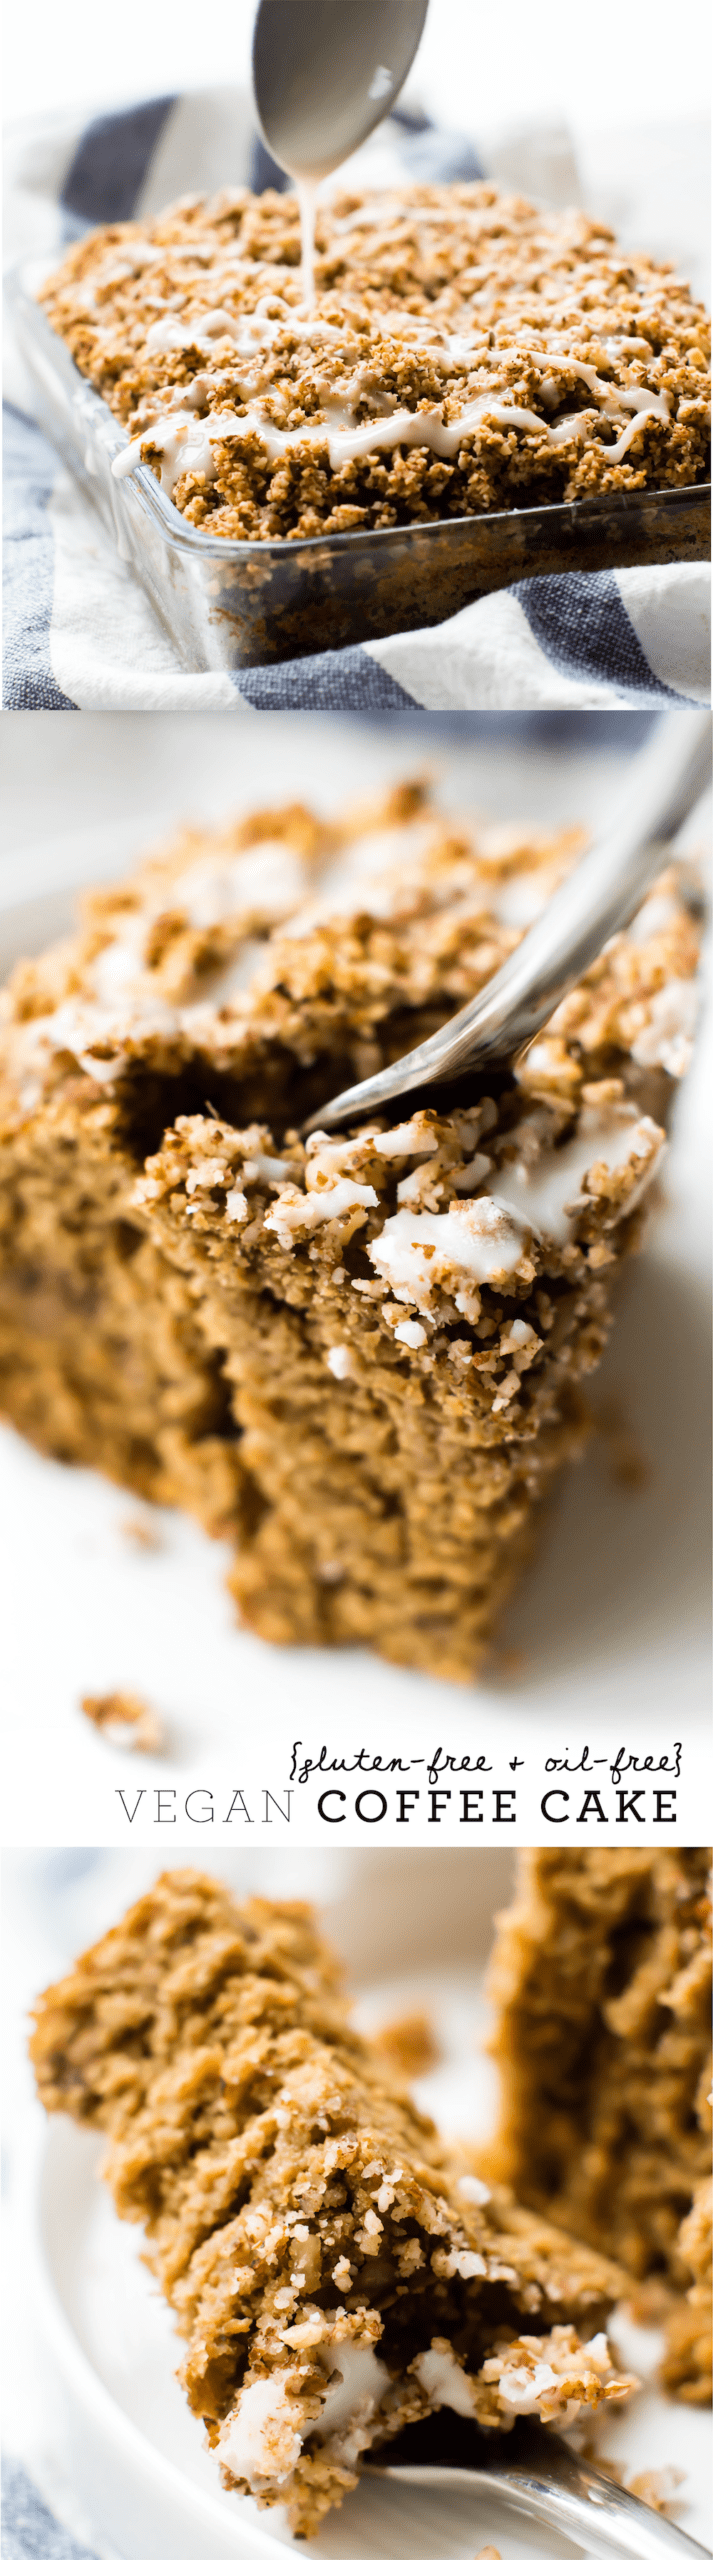 Moist fluffy oat flour cake with two layers of cinnamon streusel and a silky glaze on top--this Vegan Coffee Cake is a delectable baked morning treat!